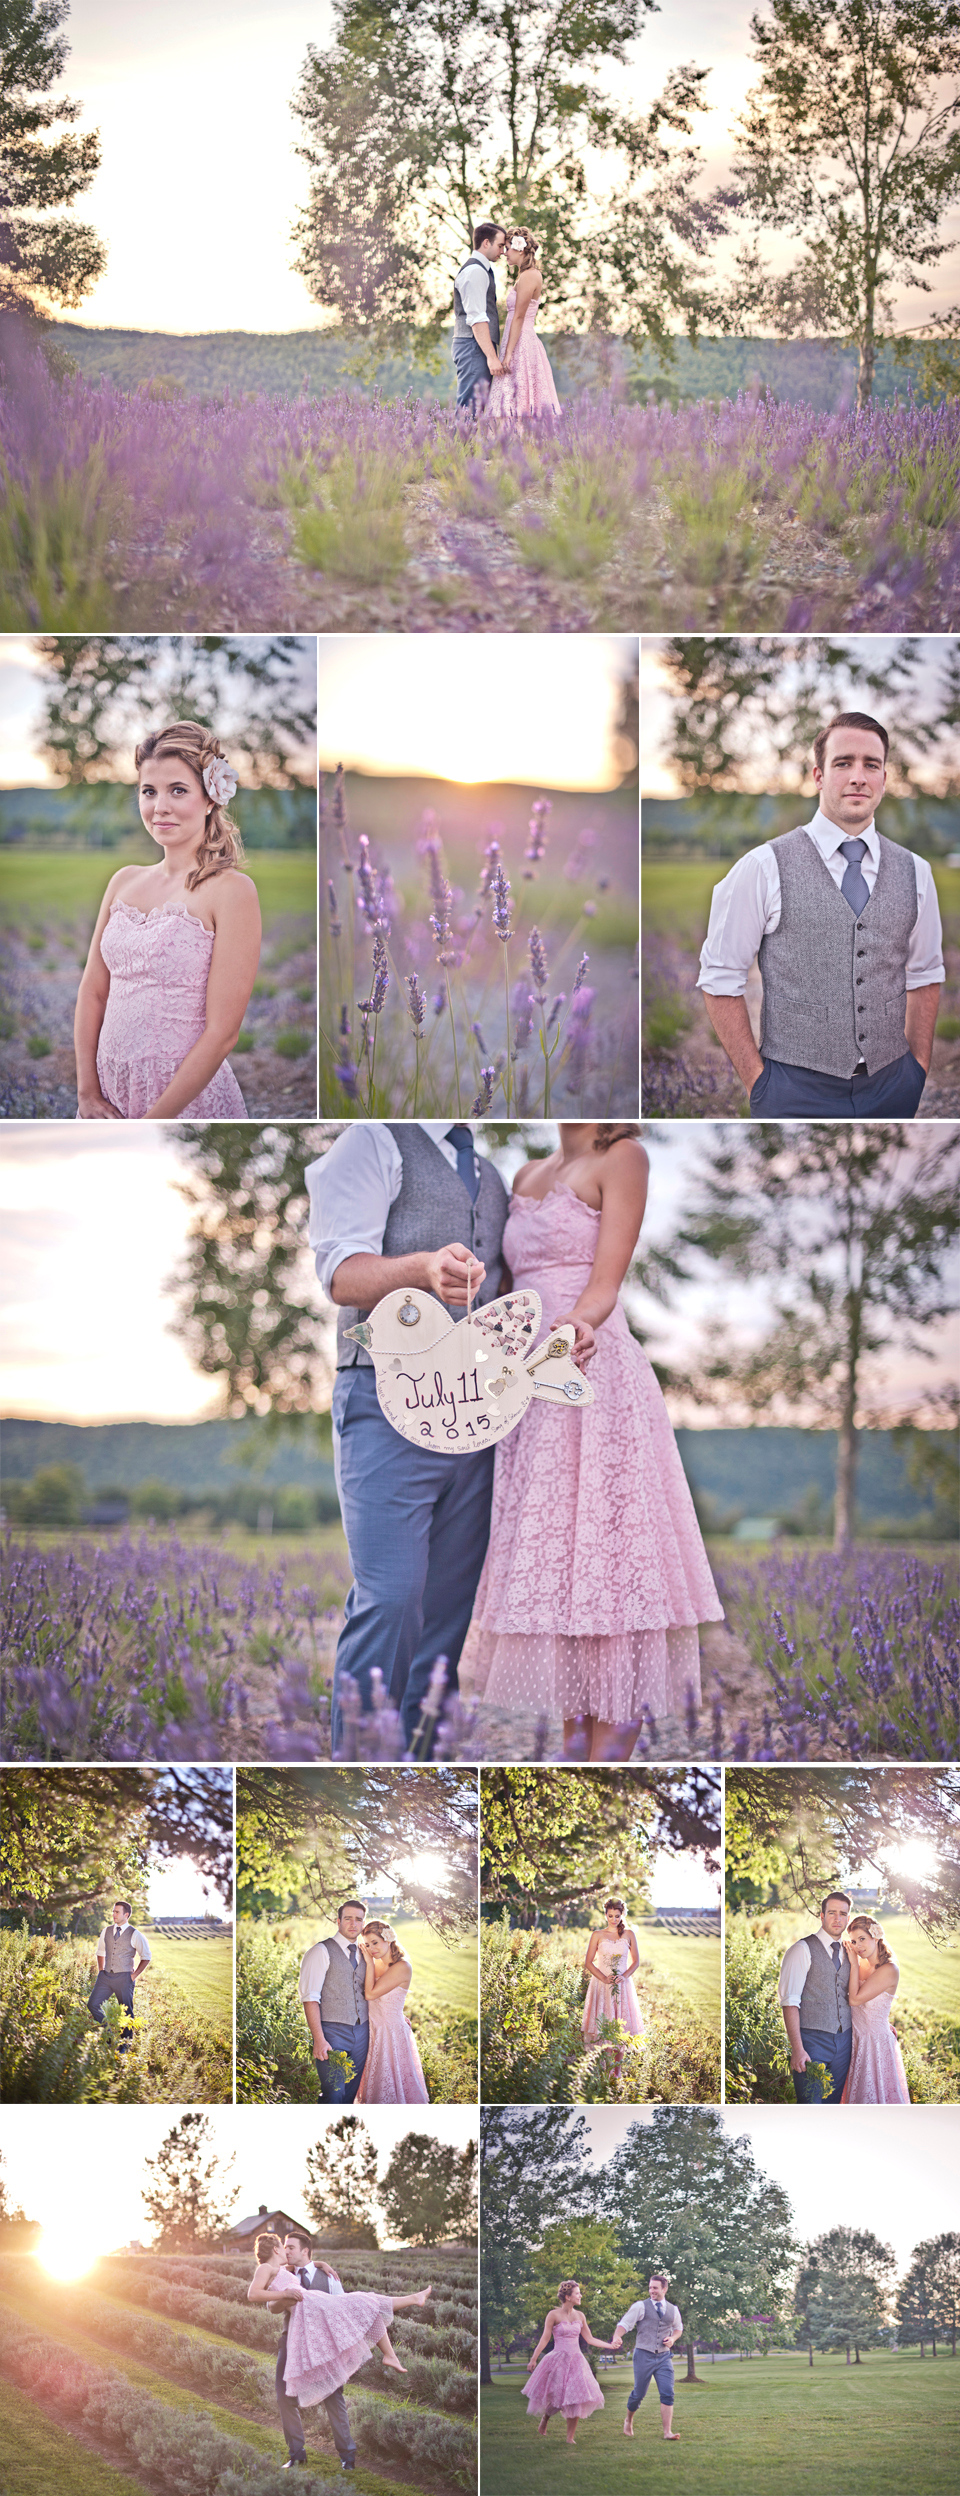 Montreal Wedding Photographer   Lavender Fields   Stanstead Quebec   Save The Date   LMP wedding photography and videography